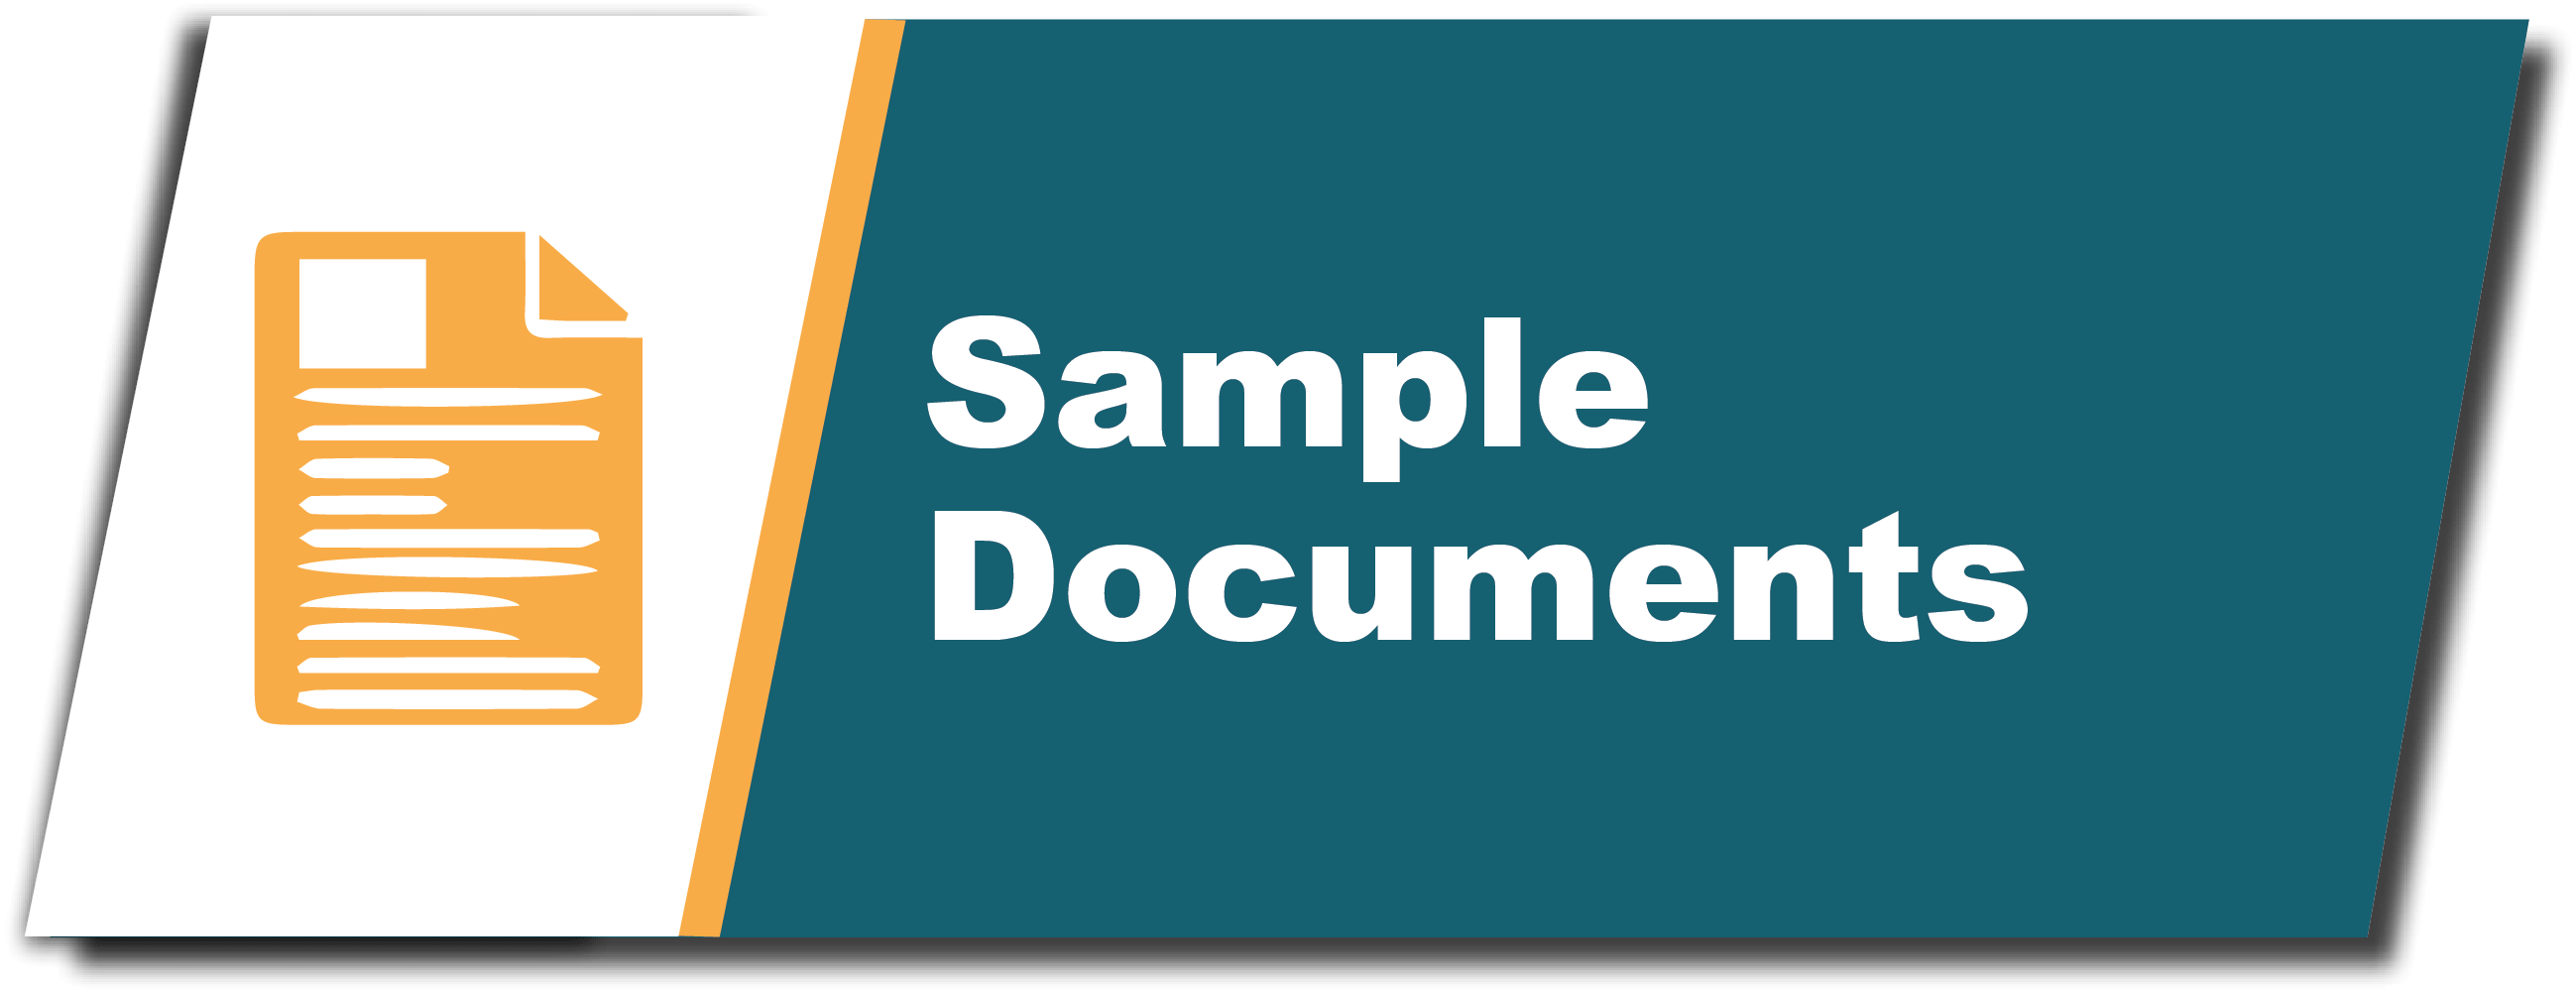 sample documents